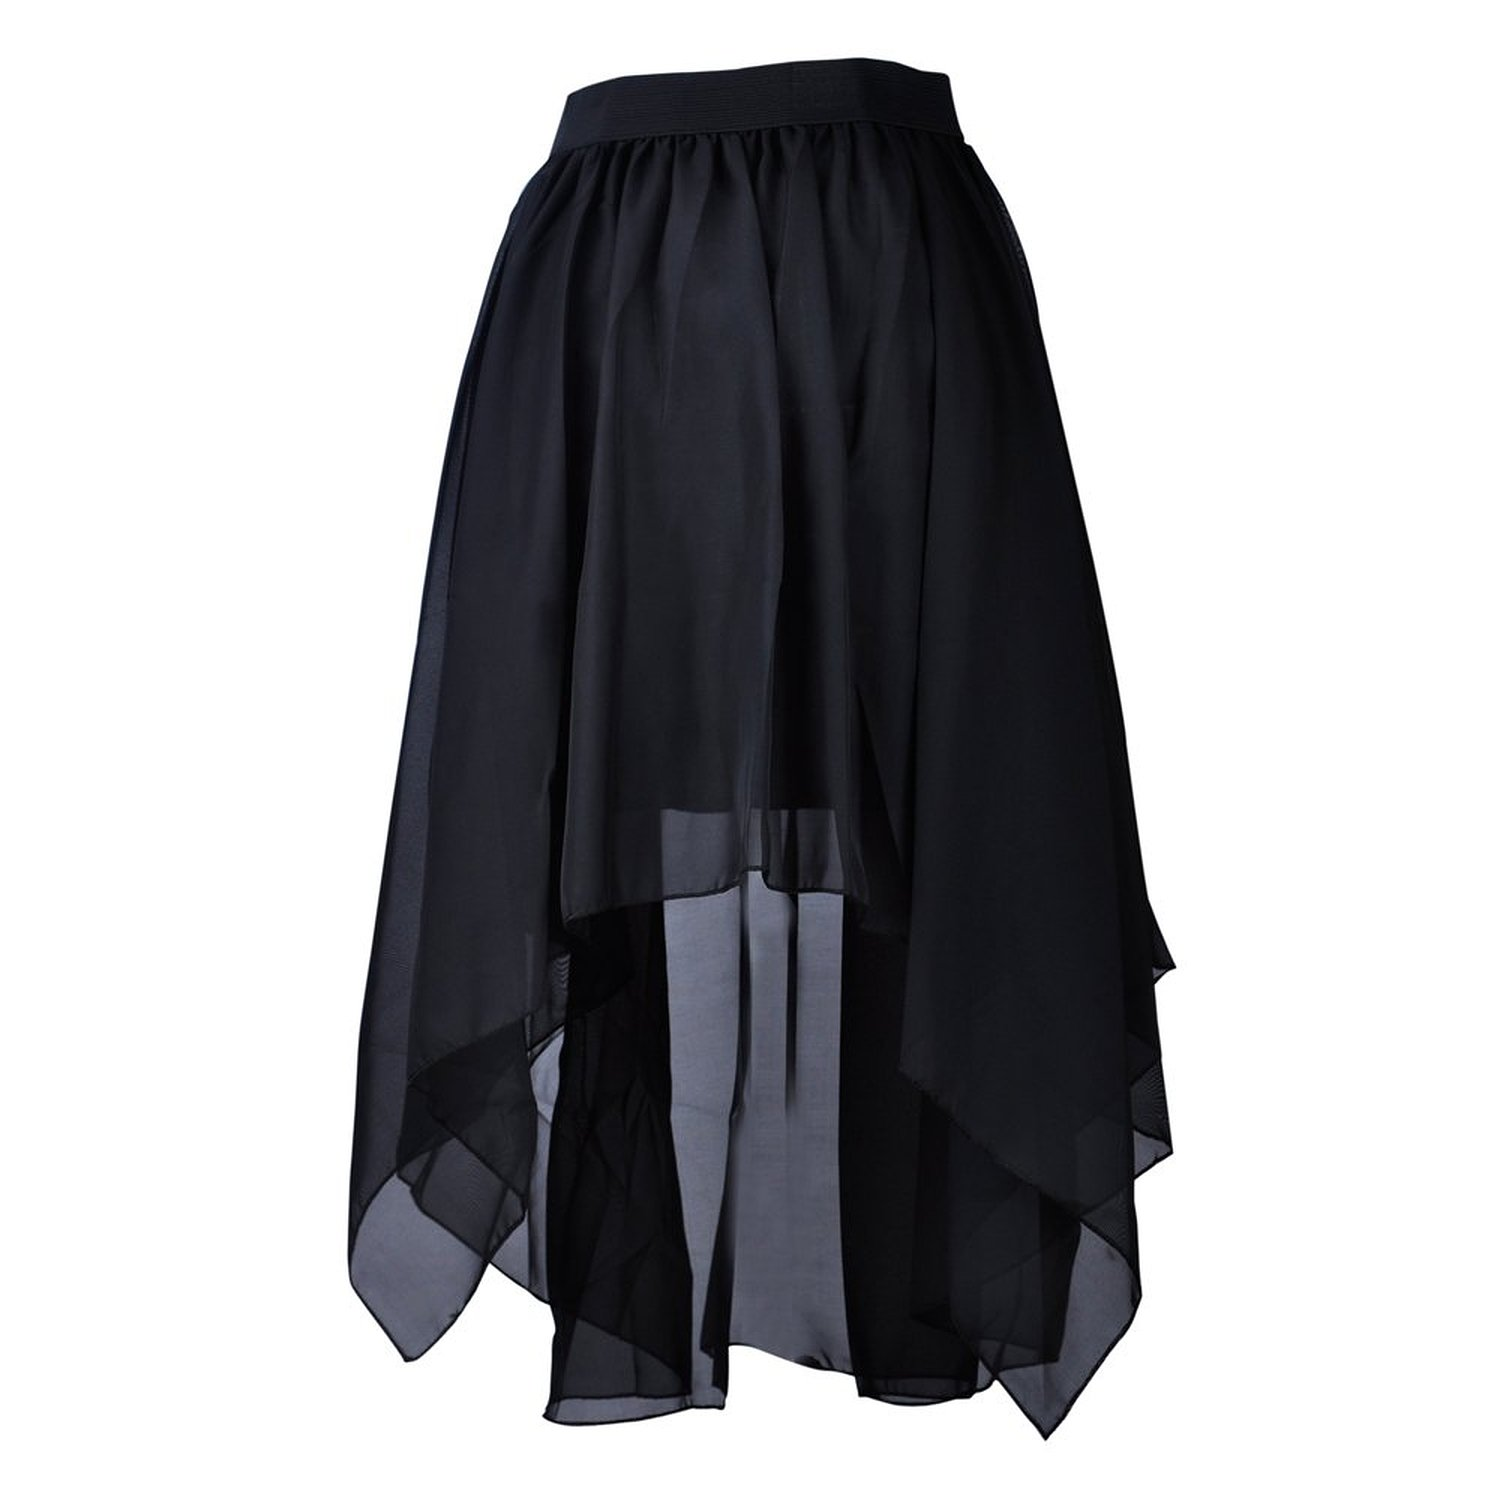 b7084921f7 TopTie Flare High Low Skirt, Chiffon Hi-Low Skirt, Tulip Skirt BLACK at  Amazon Women's Clothing ...